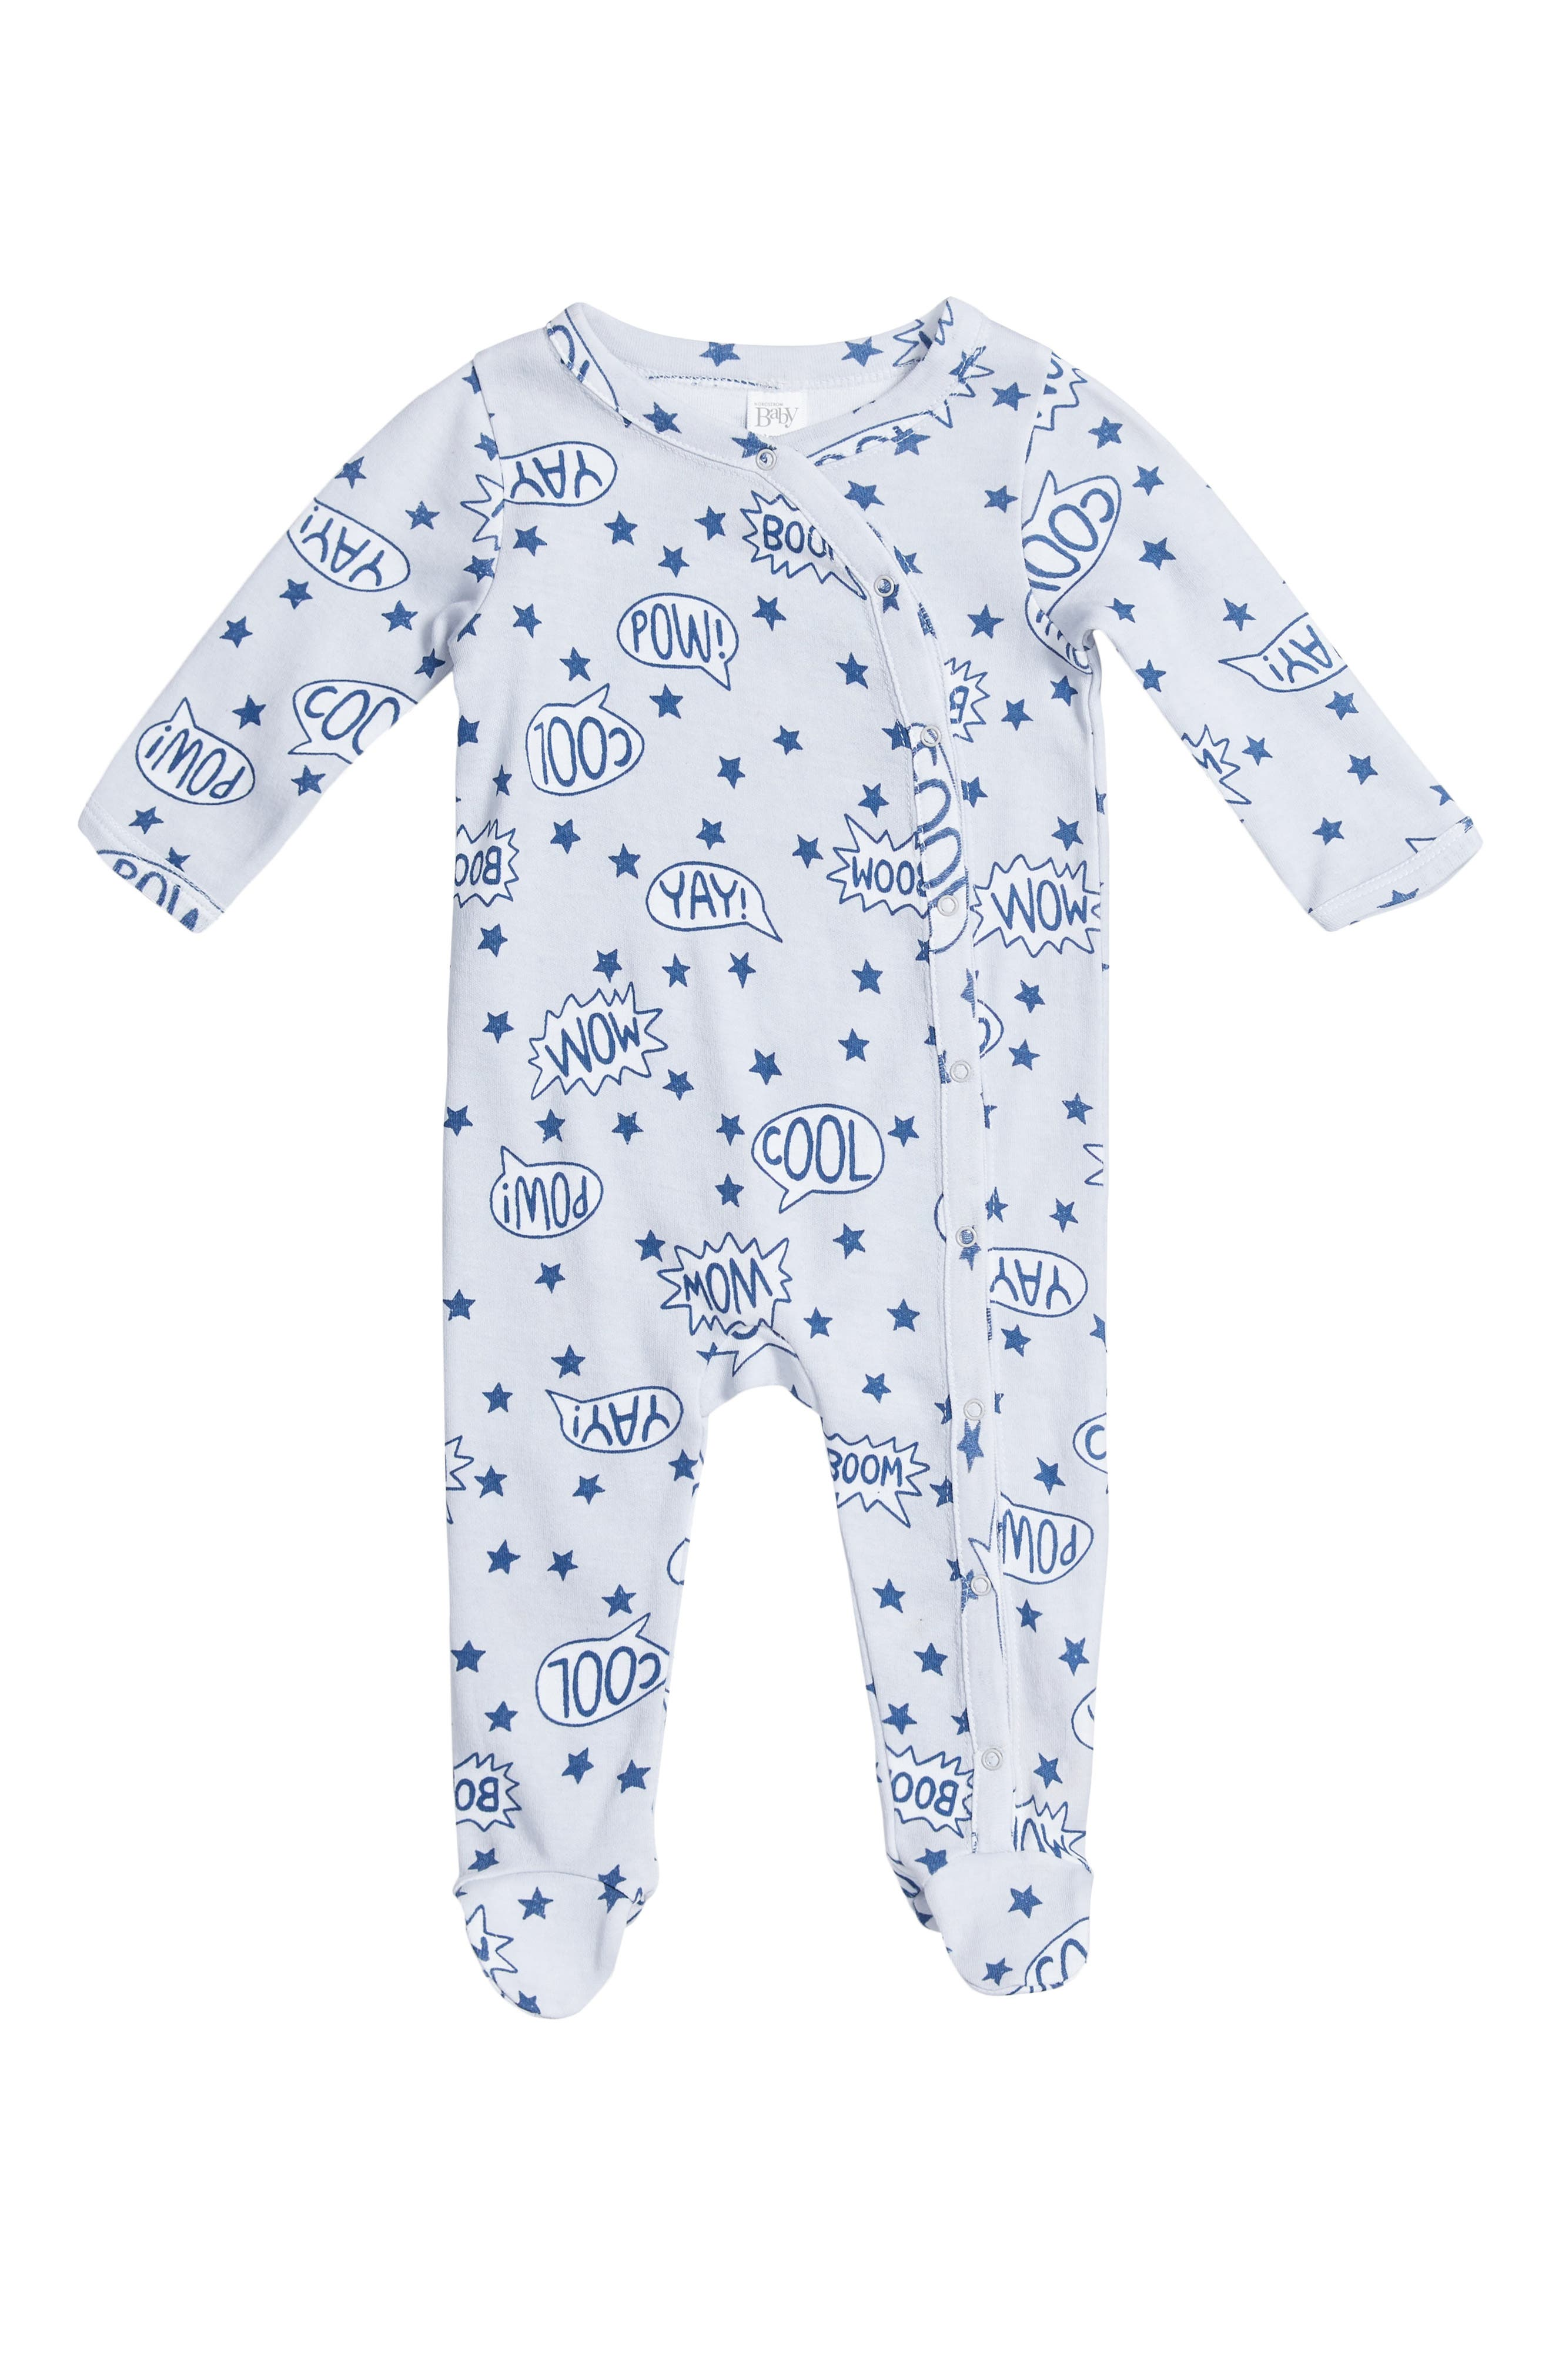 Alternate Image 1 Selected - Nordstrom Baby Print Footie (Baby)